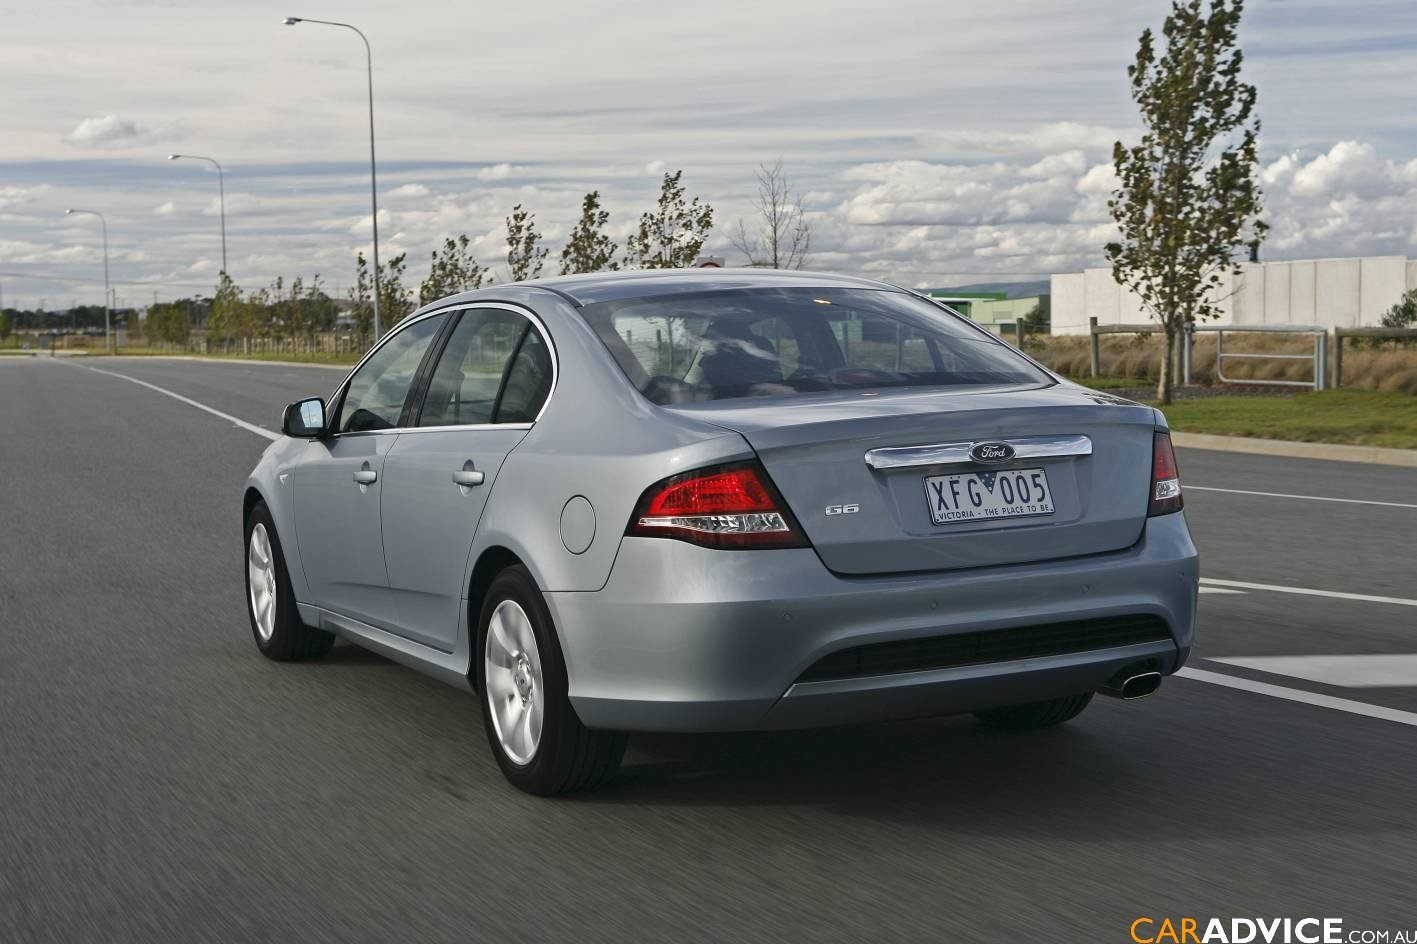 2008 Ford Fg Falcon G6 Specifications Photos Caradvice